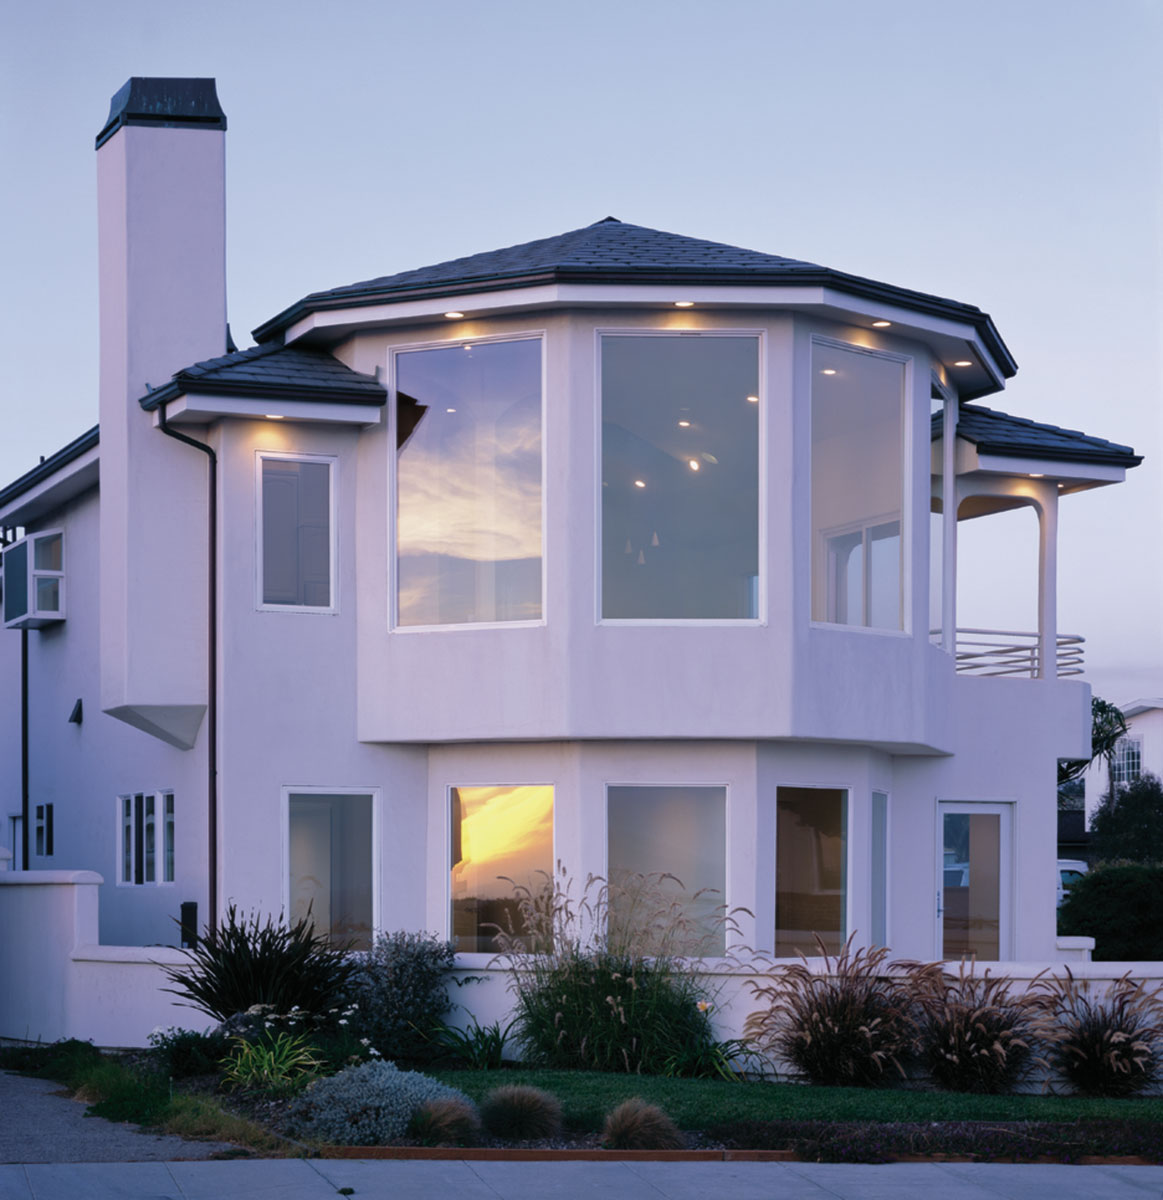 Beau Amusing Design Of The Exterior Home Design Styles With White Wall Color  Ideas Added With Big